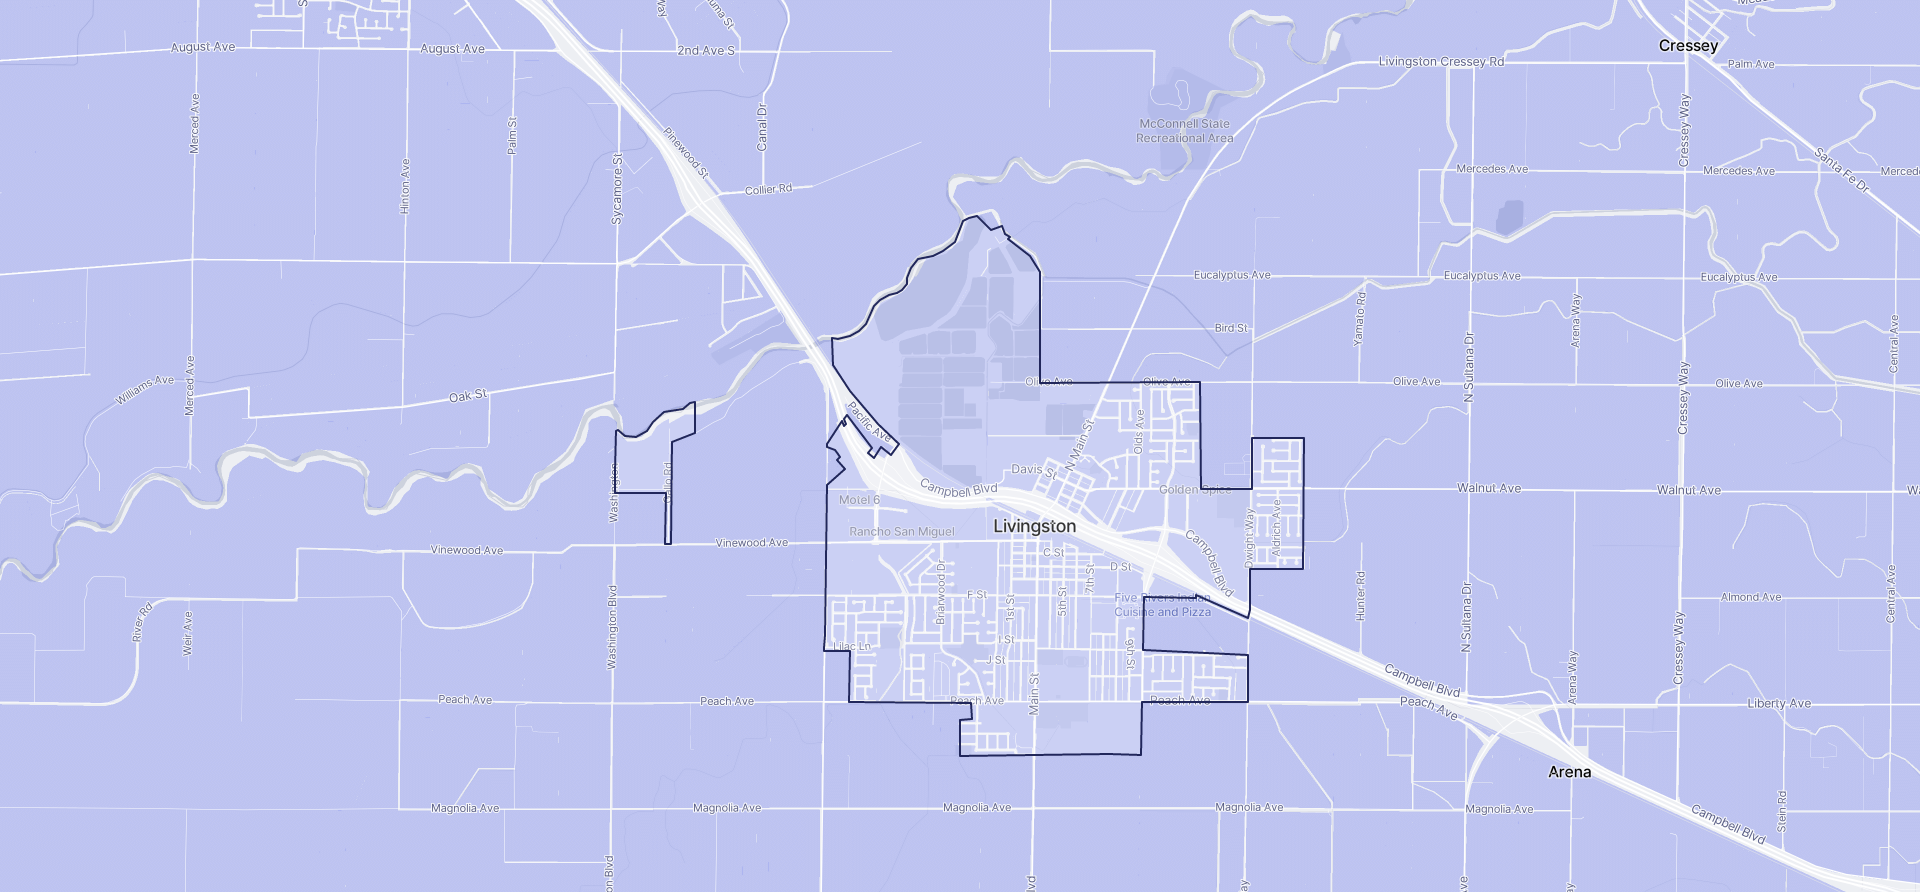 Image of Livingston boundaries on a map.